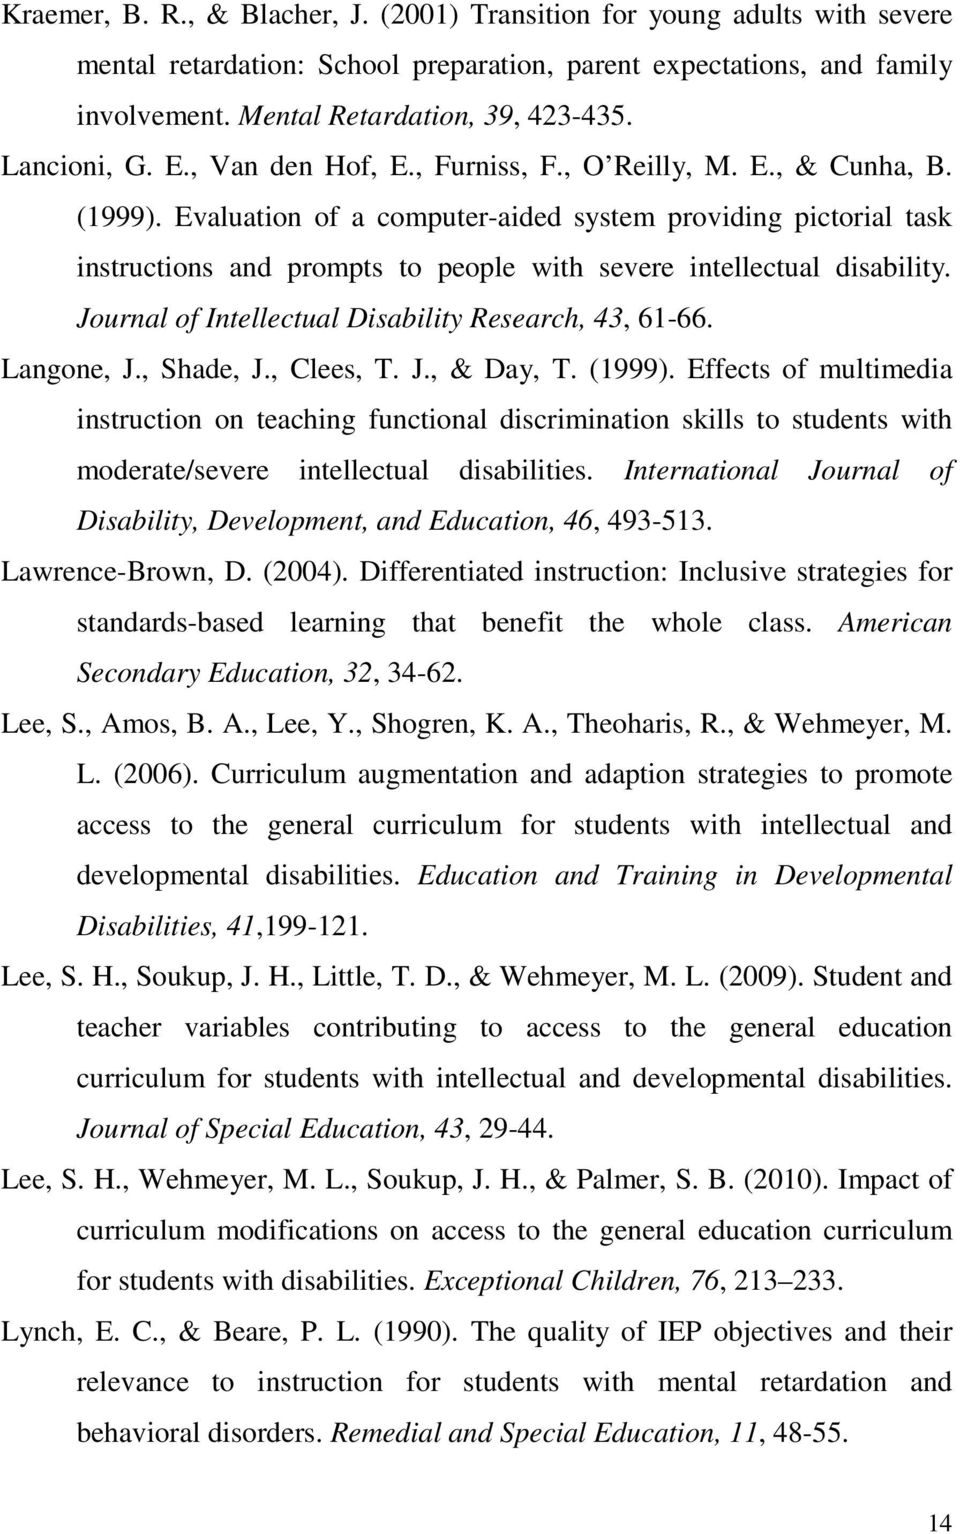 Evaluation of a computer-aided system providing pictorial task instructions and prompts to people with severe intellectual disability. Journal of Intellectual Disability Research, 43, 61-66.